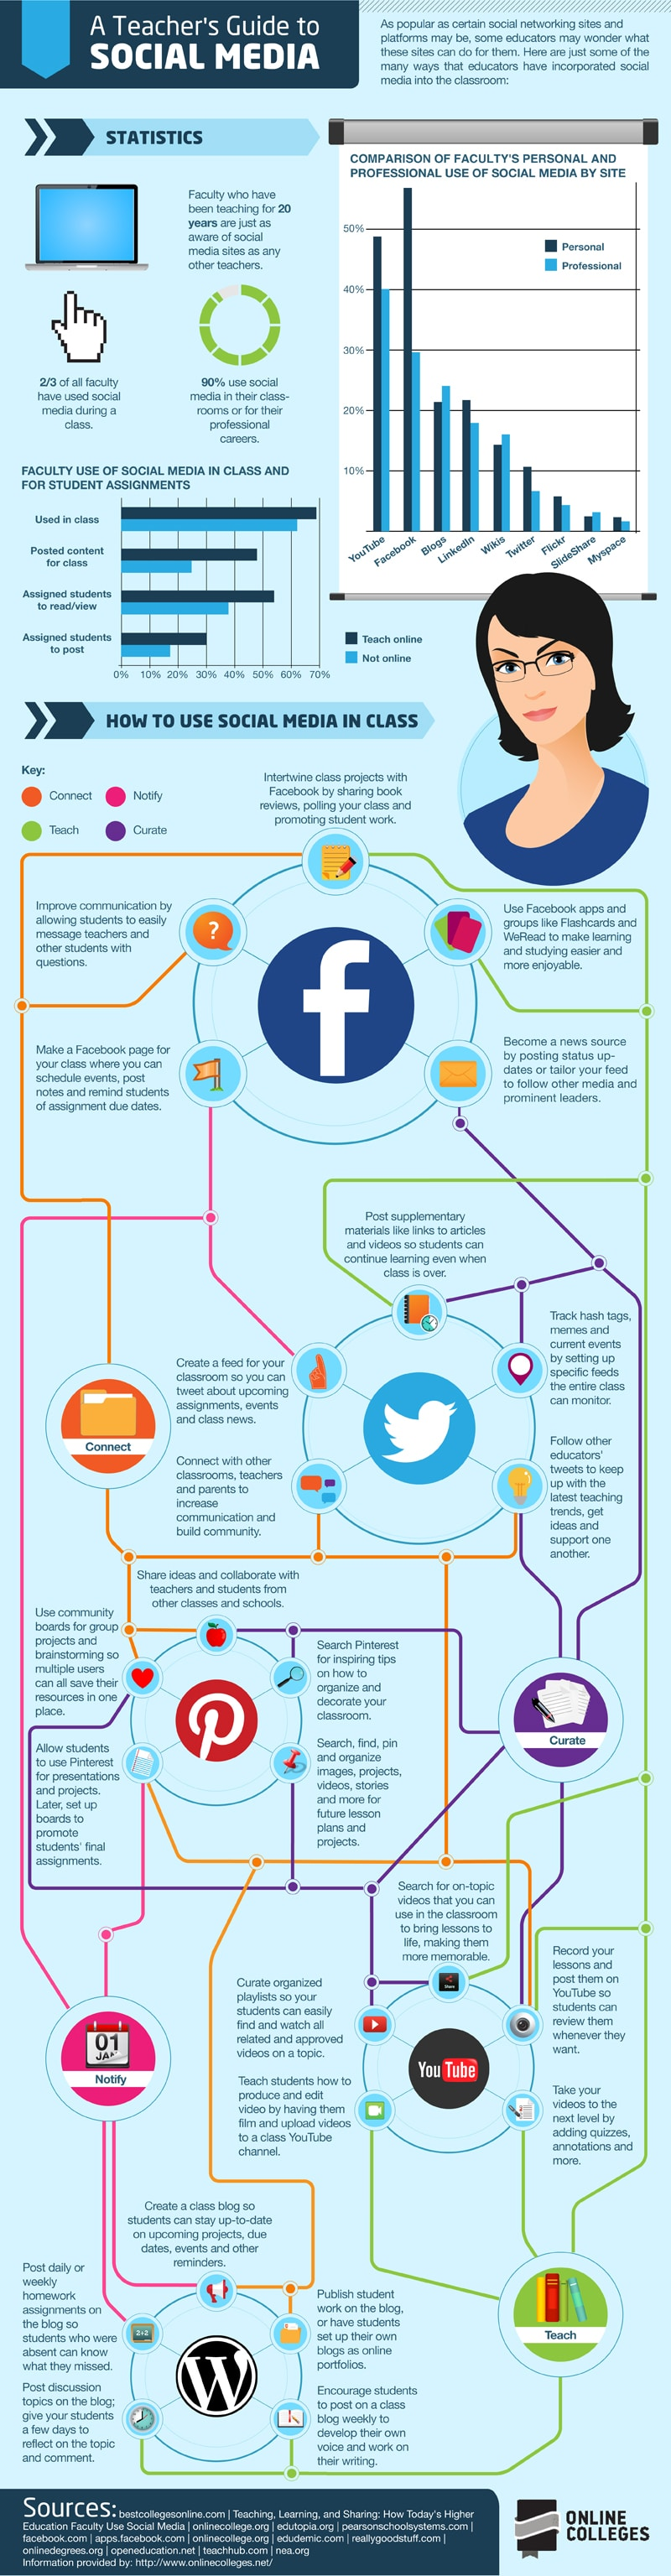 Teacher-Guide-Social-Media-Infographic